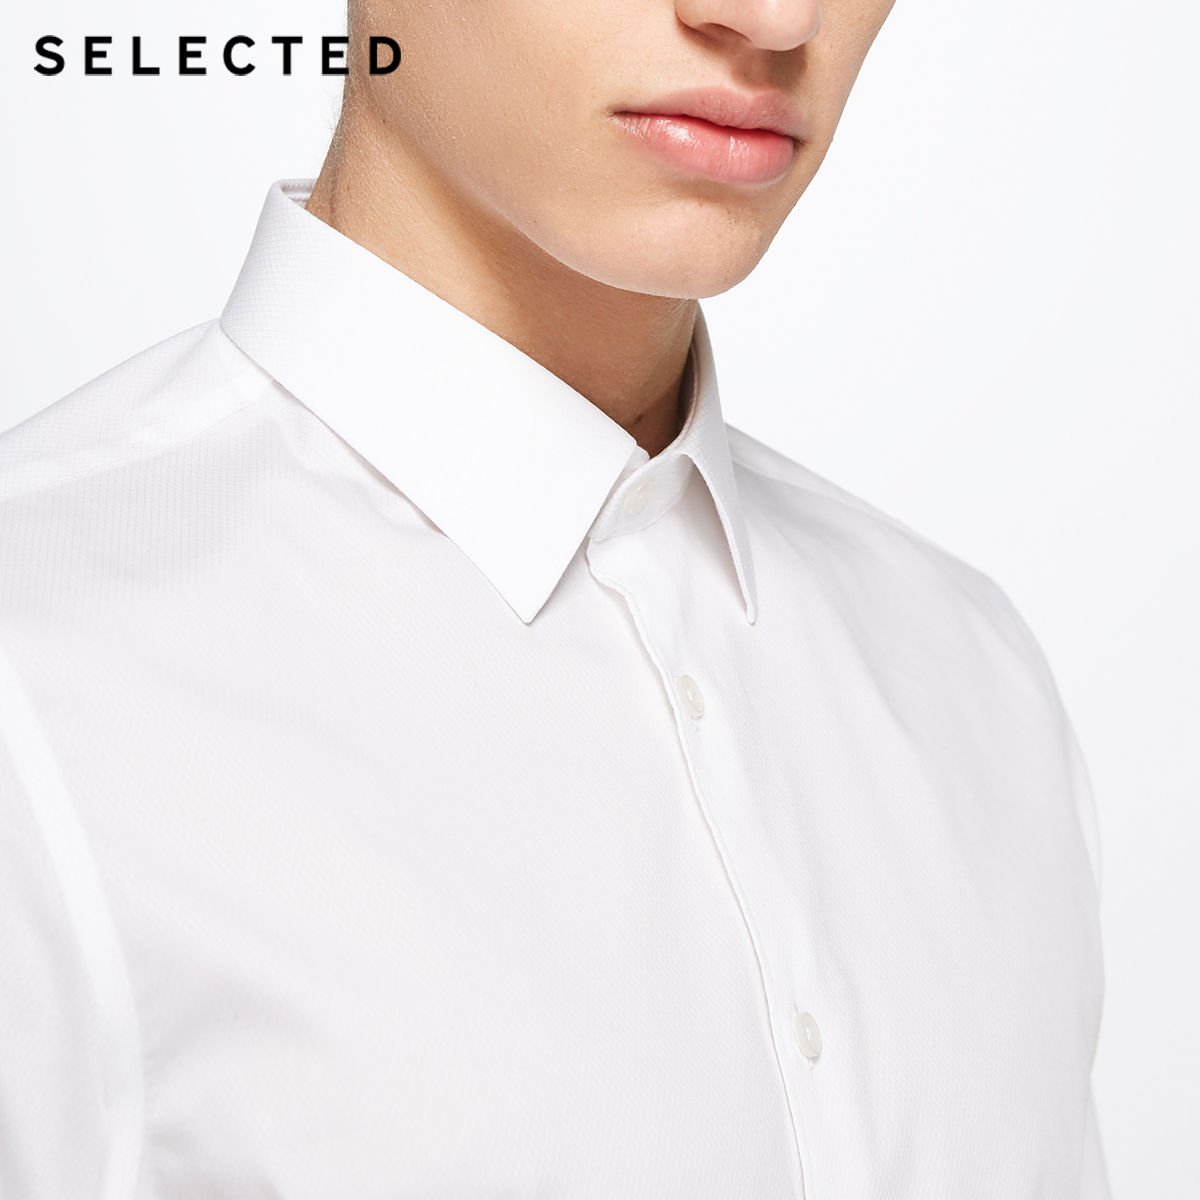 SELECTED Men Shirt Cotton Slight Stretch Pure Color Long sleeved Shirt Formal Shirts For Men 418105541 in Casual Shirts from Men 39 s Clothing